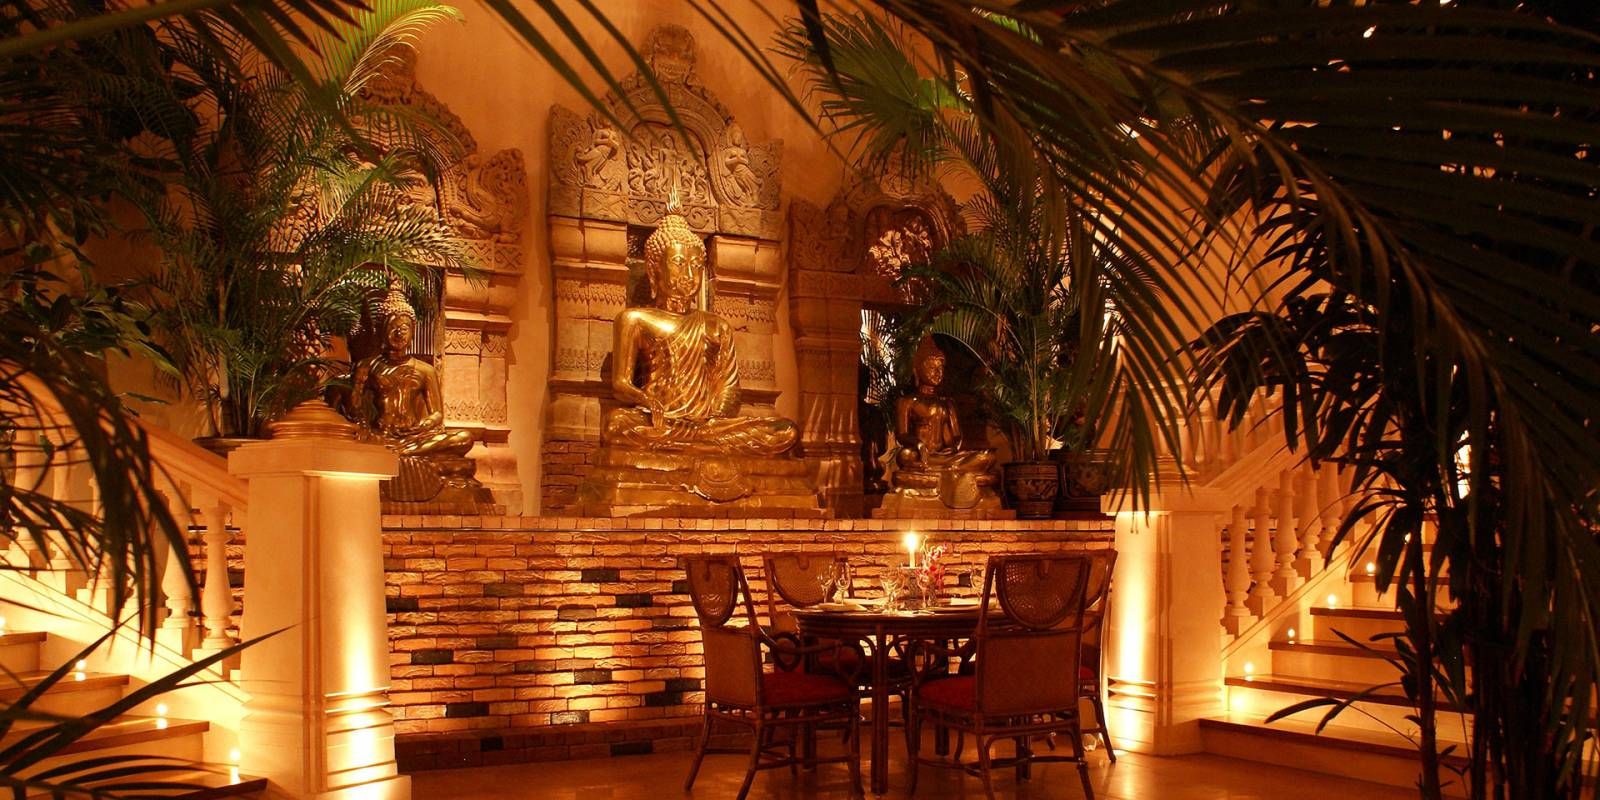 Royal Thai cuisine in Lucerne